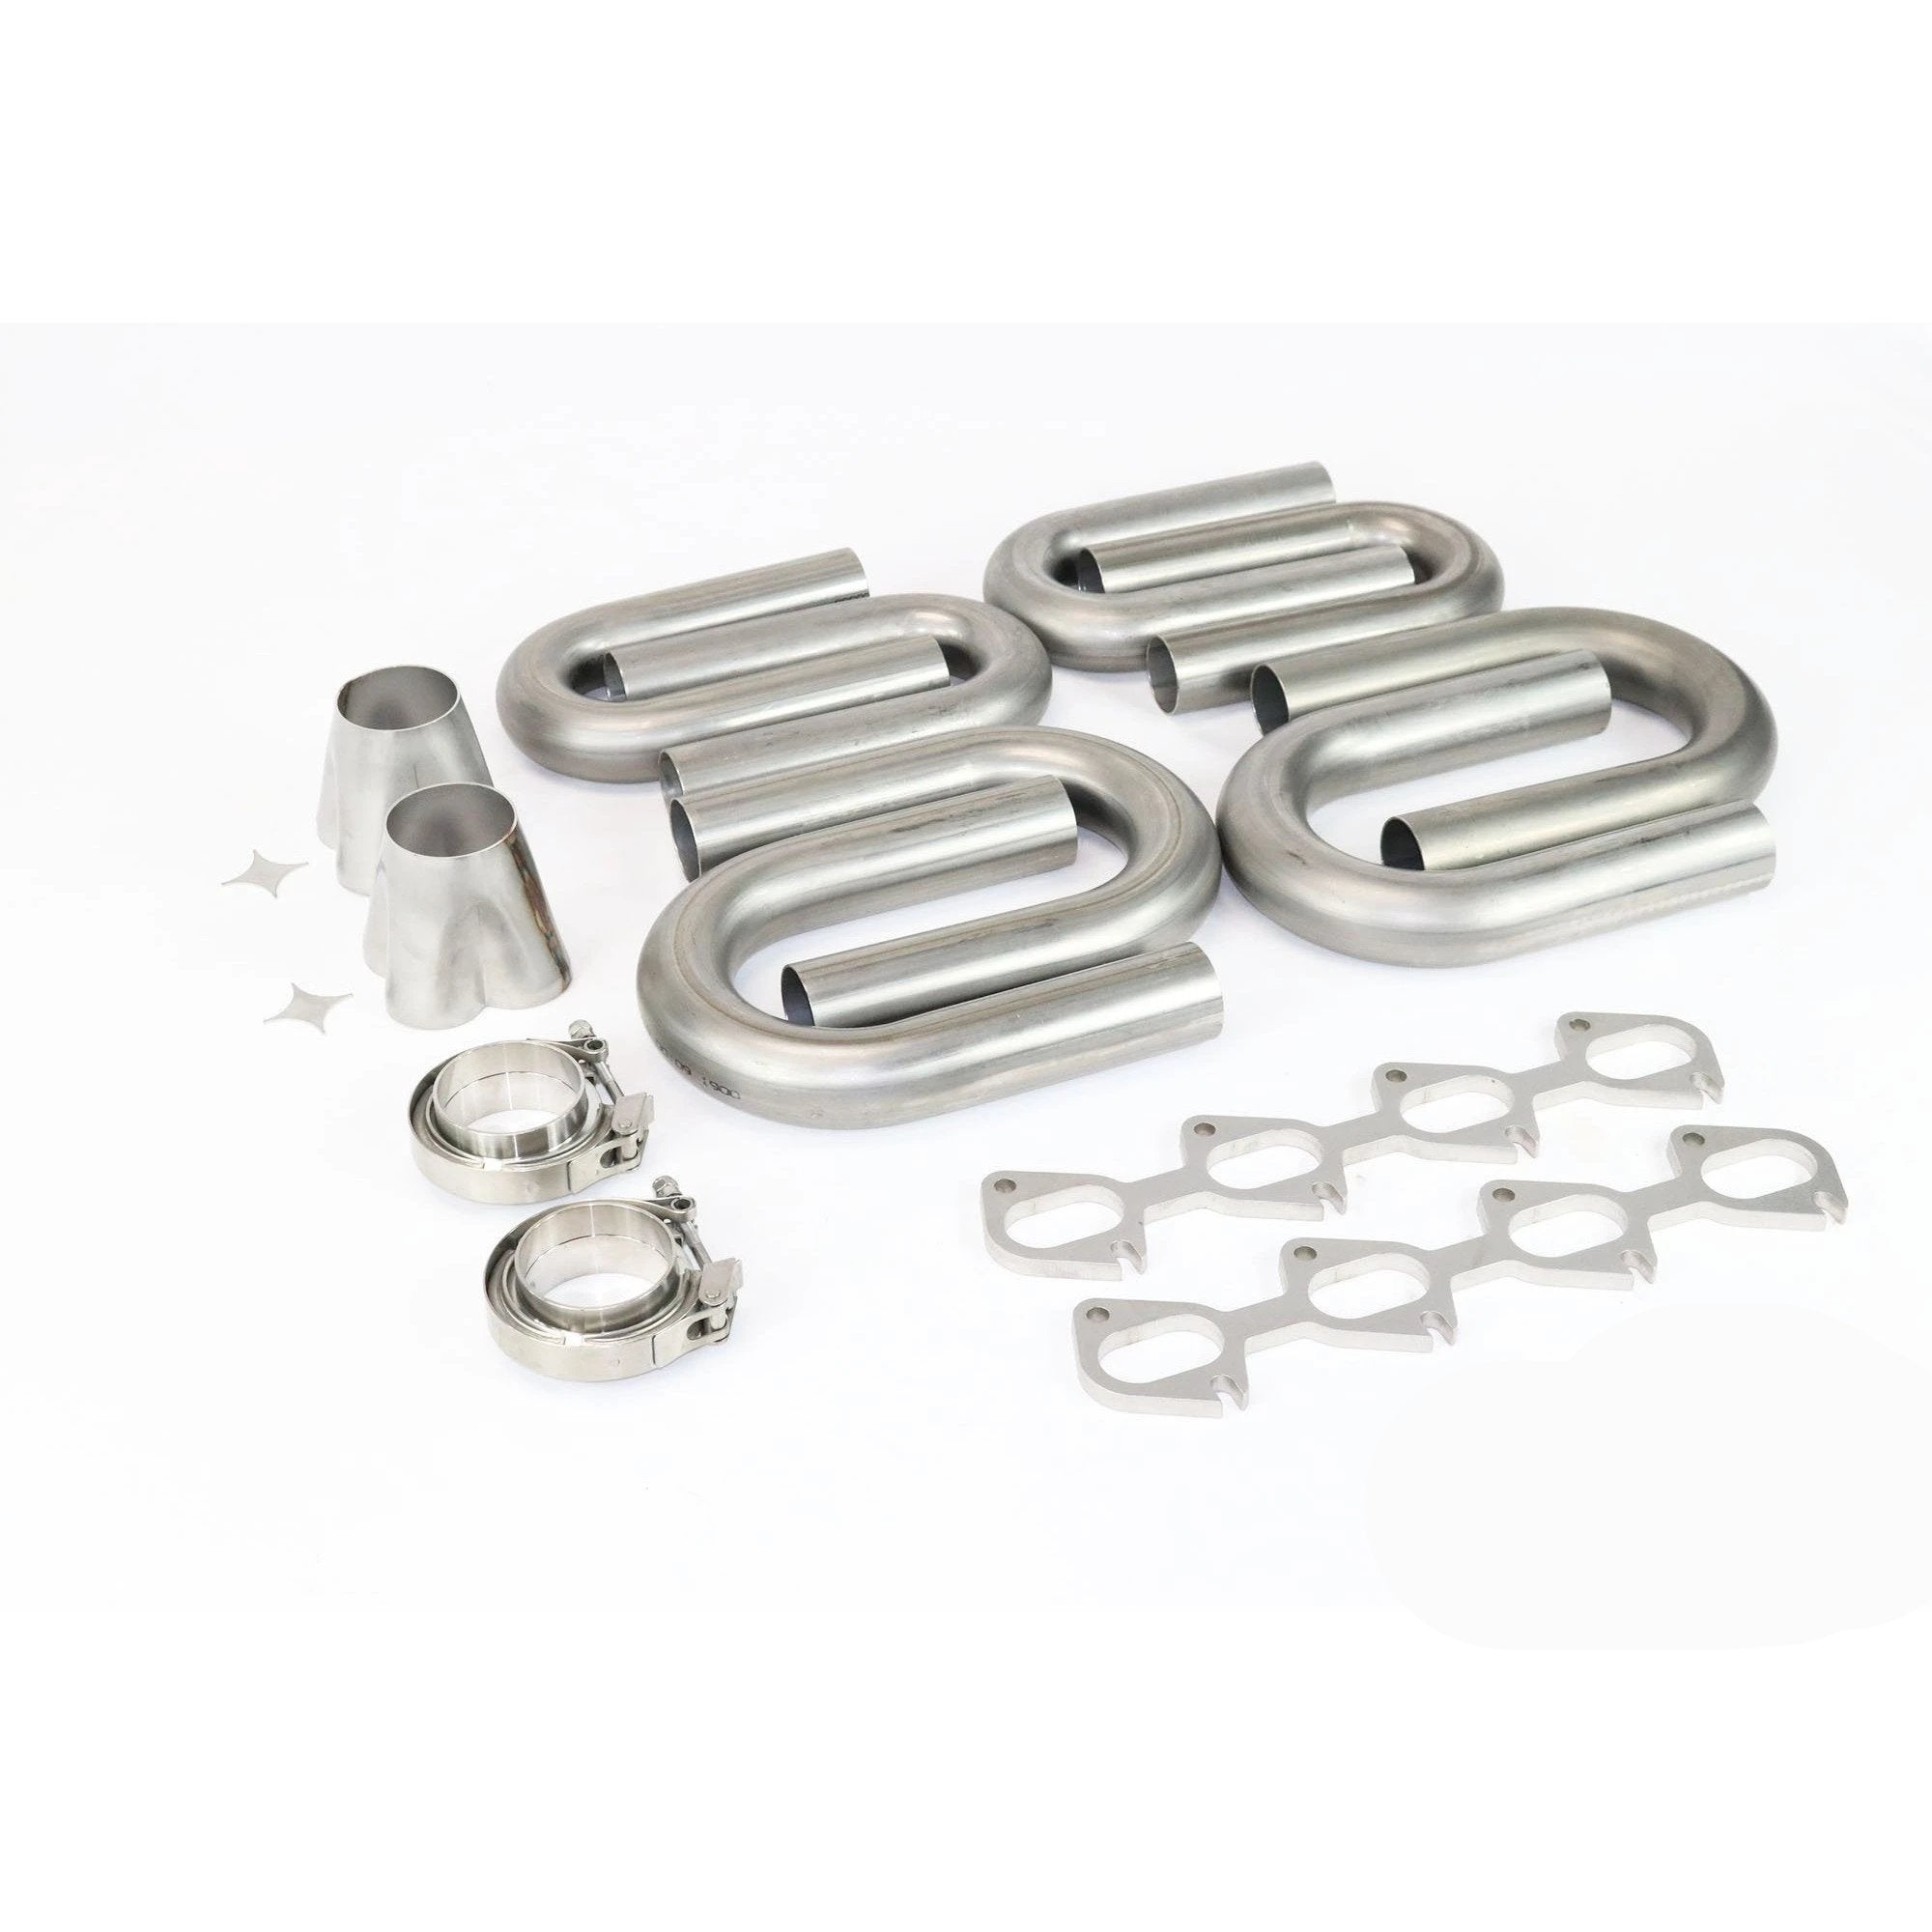 Ford Modular 4V 4.6 5.4 304 Stainless Turbo Header Build Kit-Motion Raceworks-Motion Raceworks